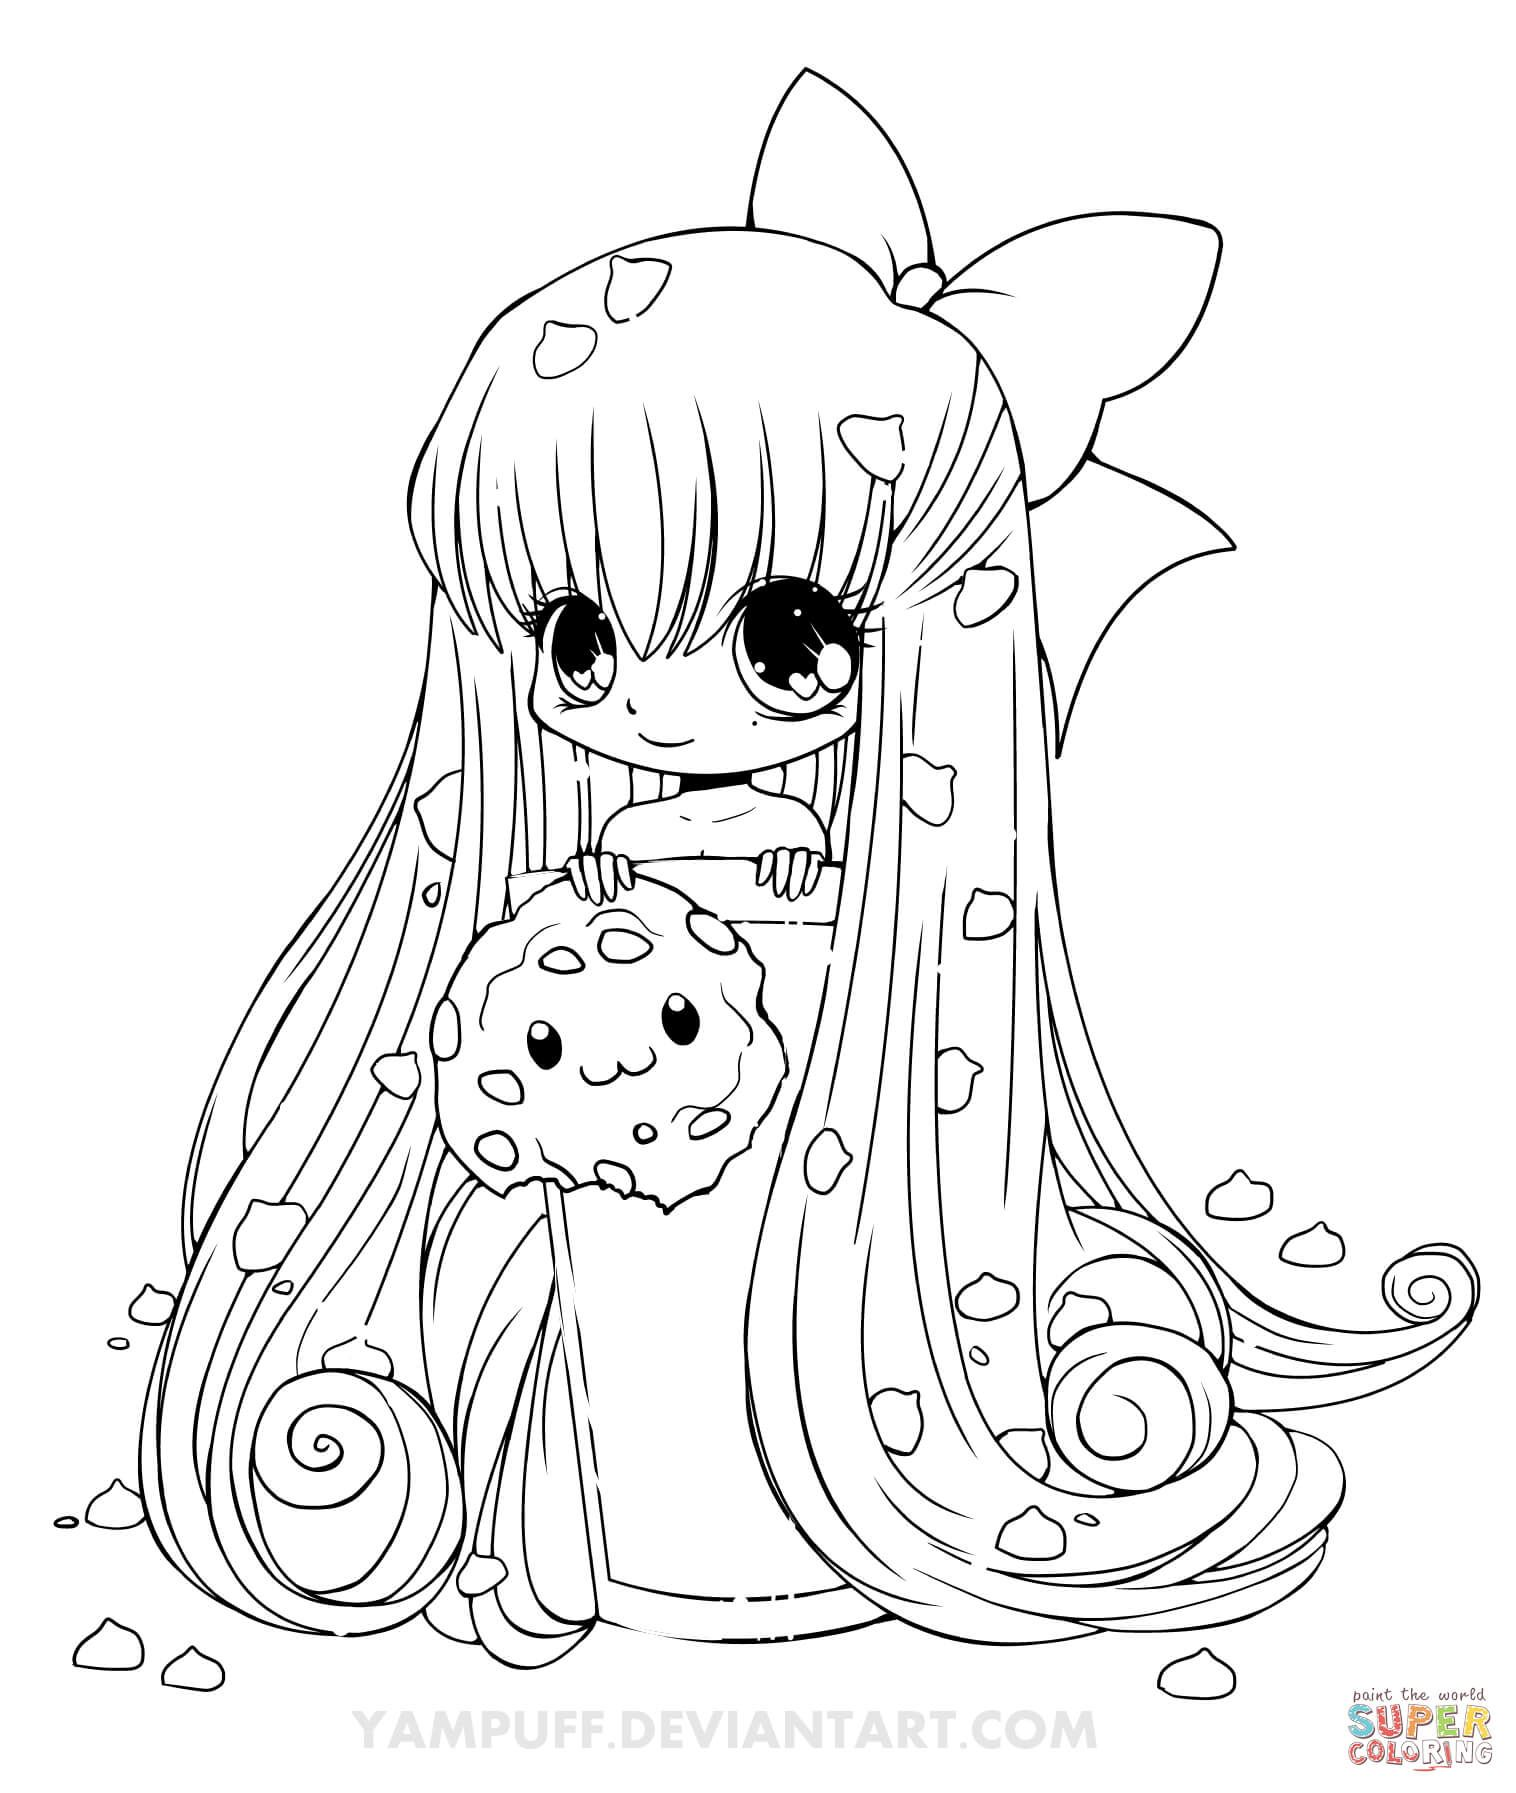 Pin By Genevieve Staley On Yam Puff Deviant Art Cute Coloring Pages Chibi Coloring Pages Princess Coloring Pages